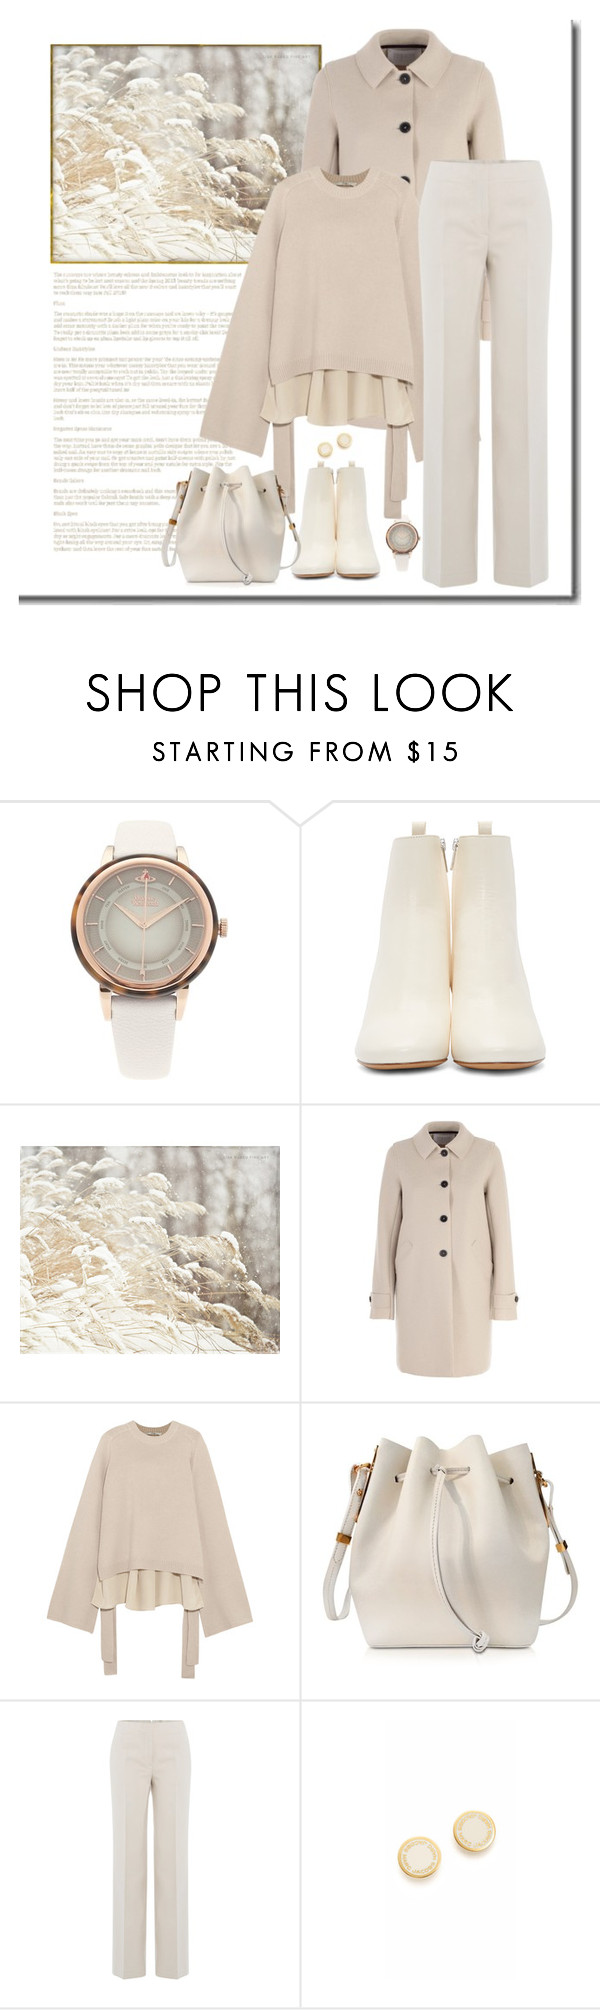 """Shades of Cream"" by terry-tlc ❤ liked on Polyvore featuring Vivienne Westwood, Isabel Marant, Harris Wharf London, TIBI, Sophie Hulme, Helmut Lang, Marc Jacobs, Winter, contest and fashionset"